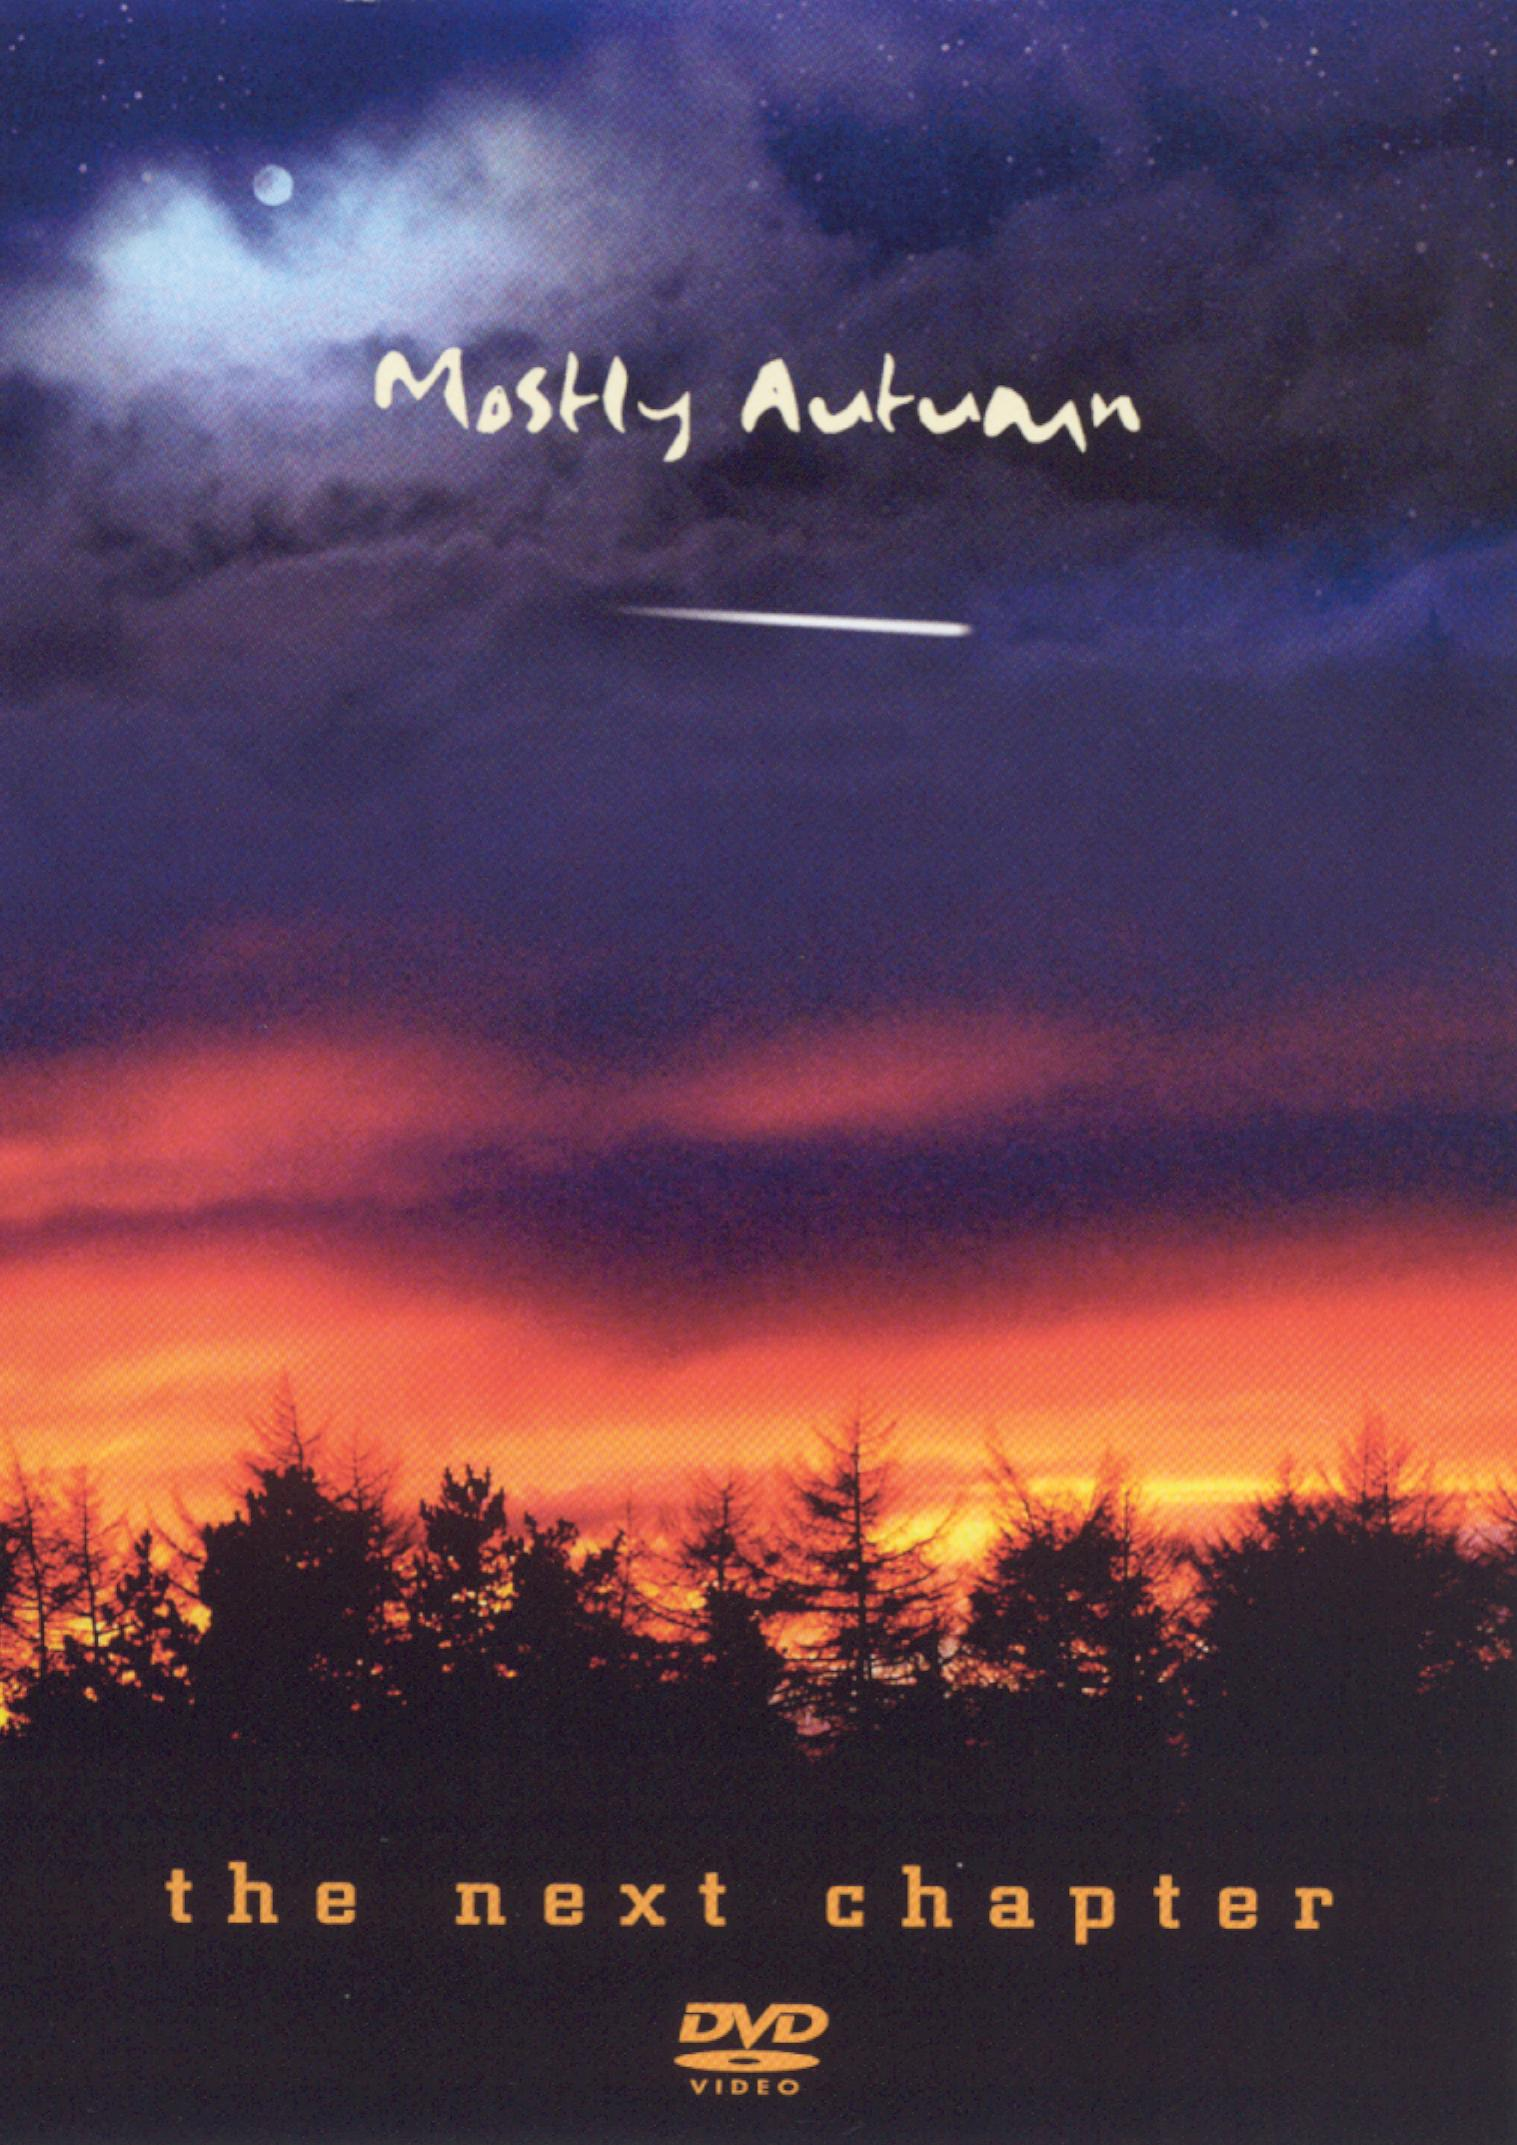 Mostly Autumn: The Next Chapter